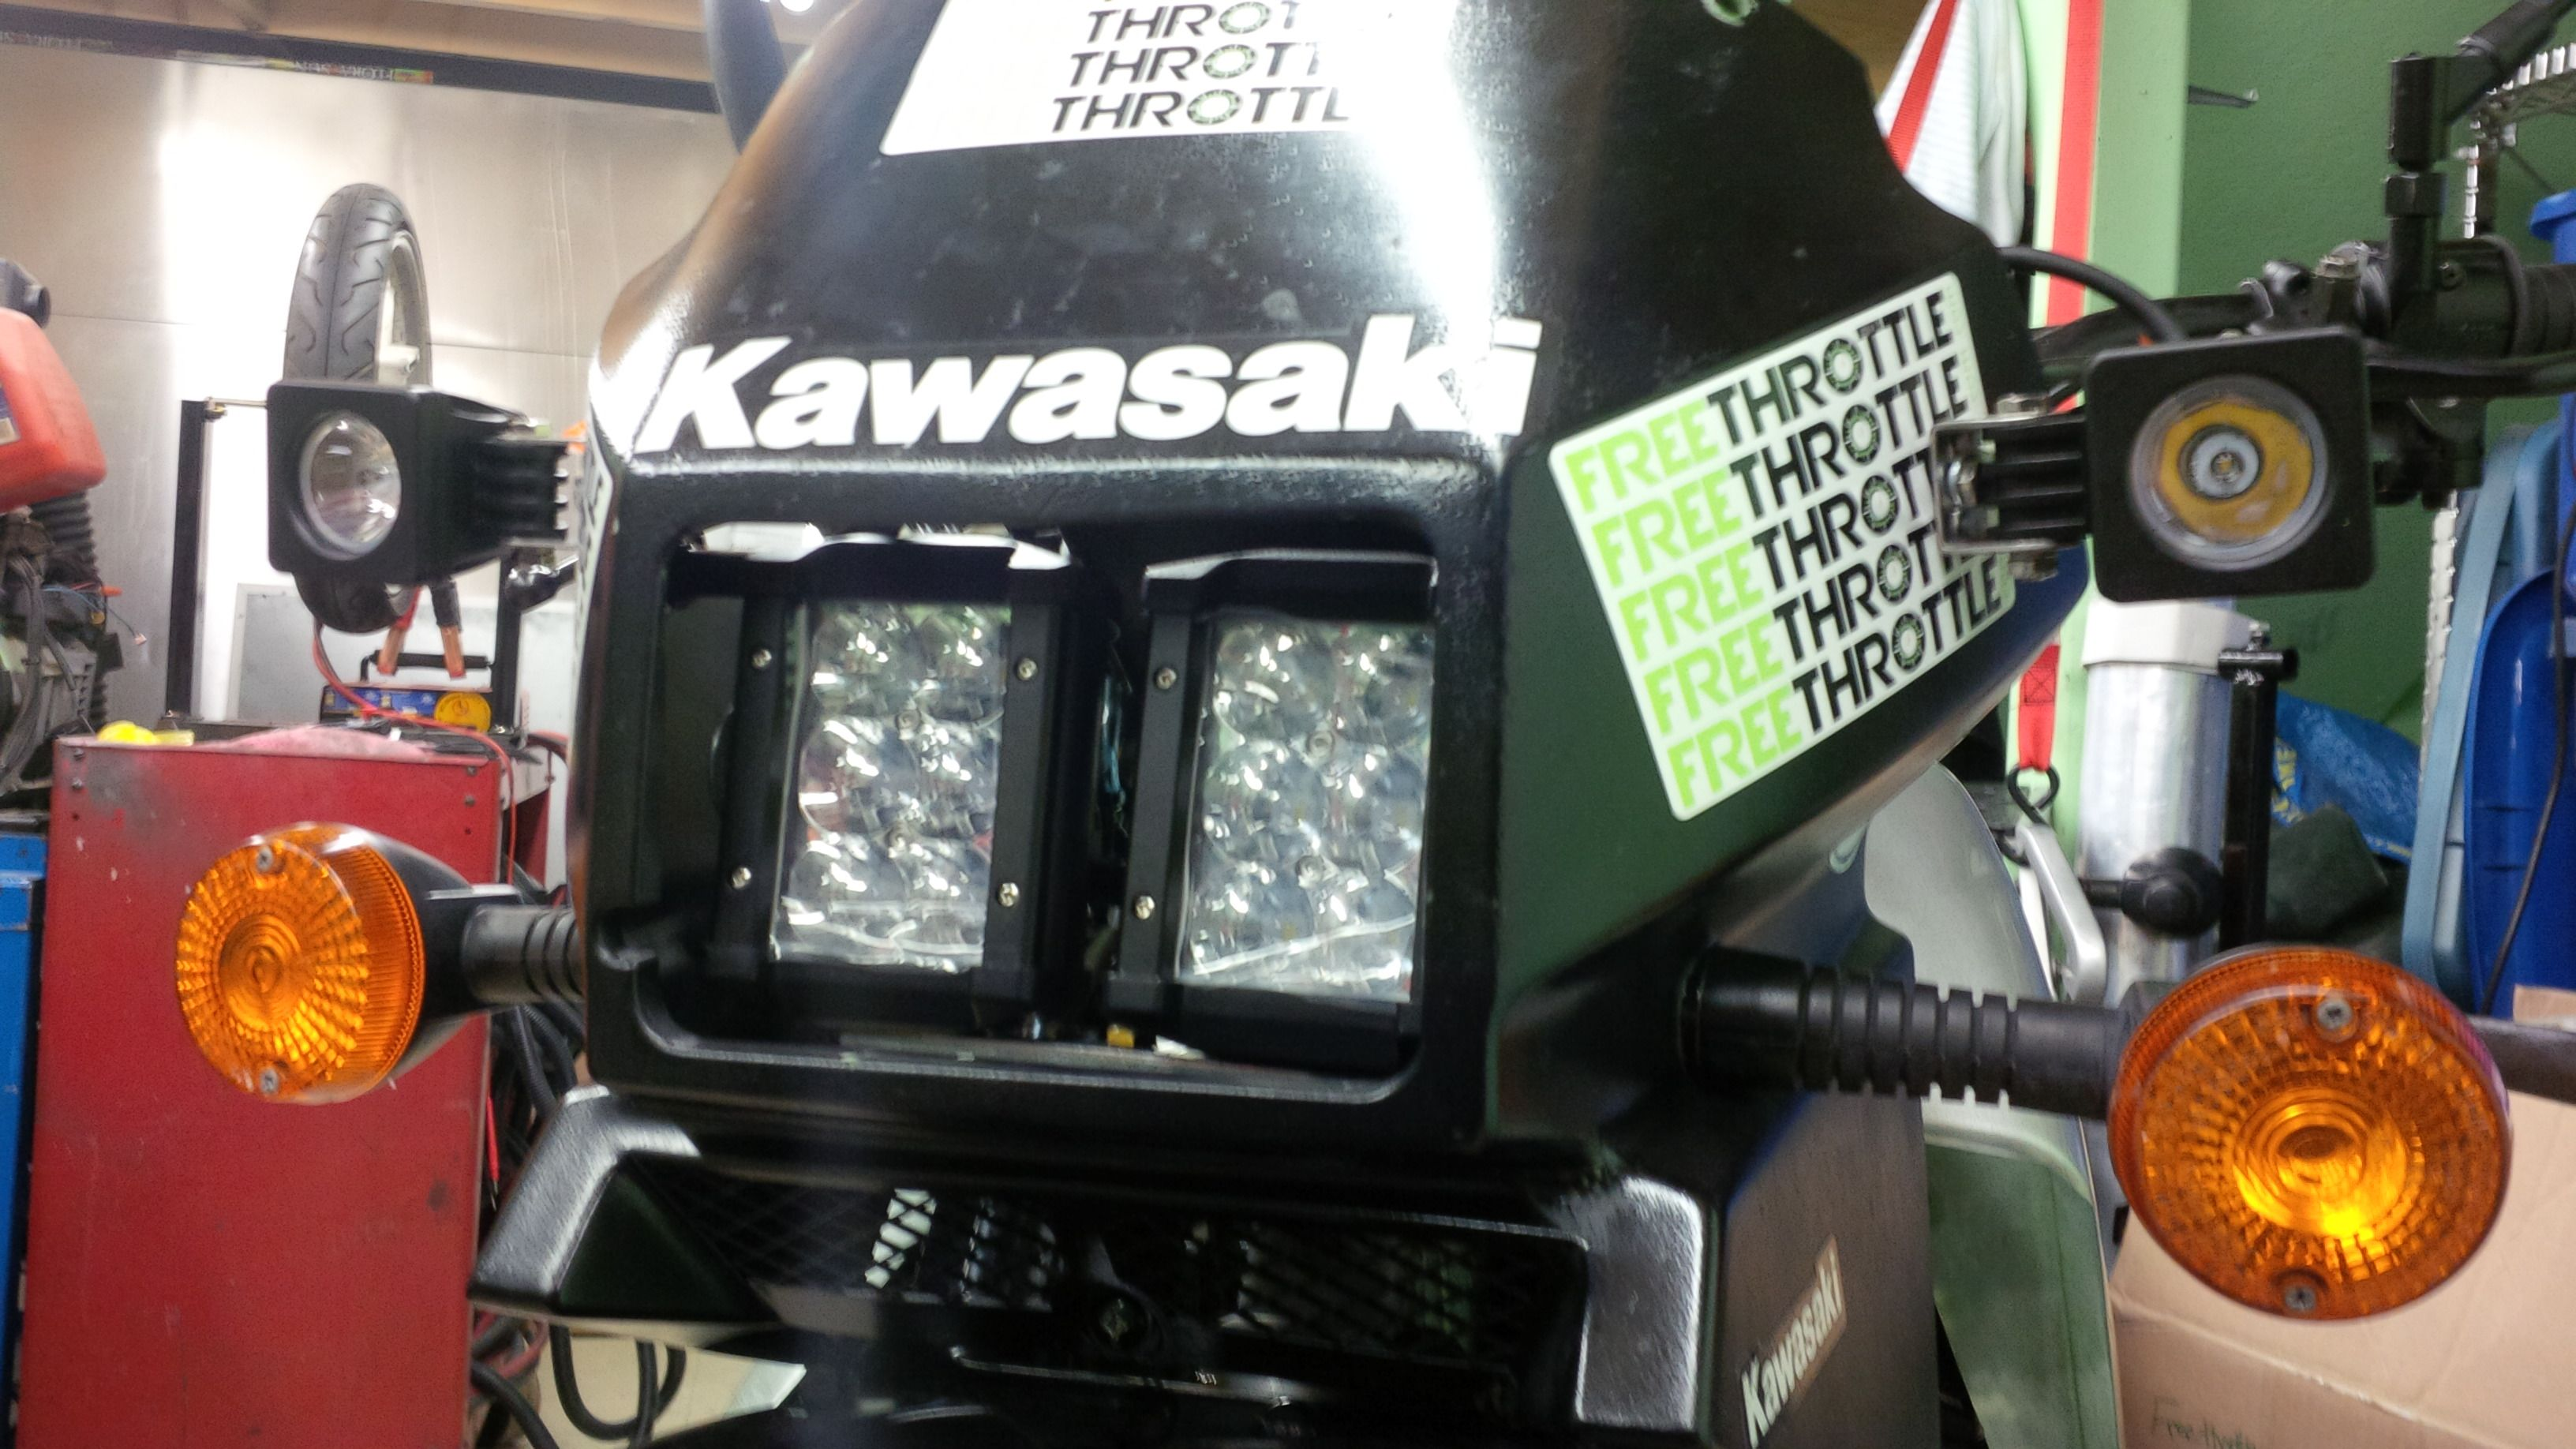 Kawasaki Klr 650 45 Led Bars X2 As Well 2x 10w Spot High Klr650 Engine Diagram And Low Beam Operate Across Two